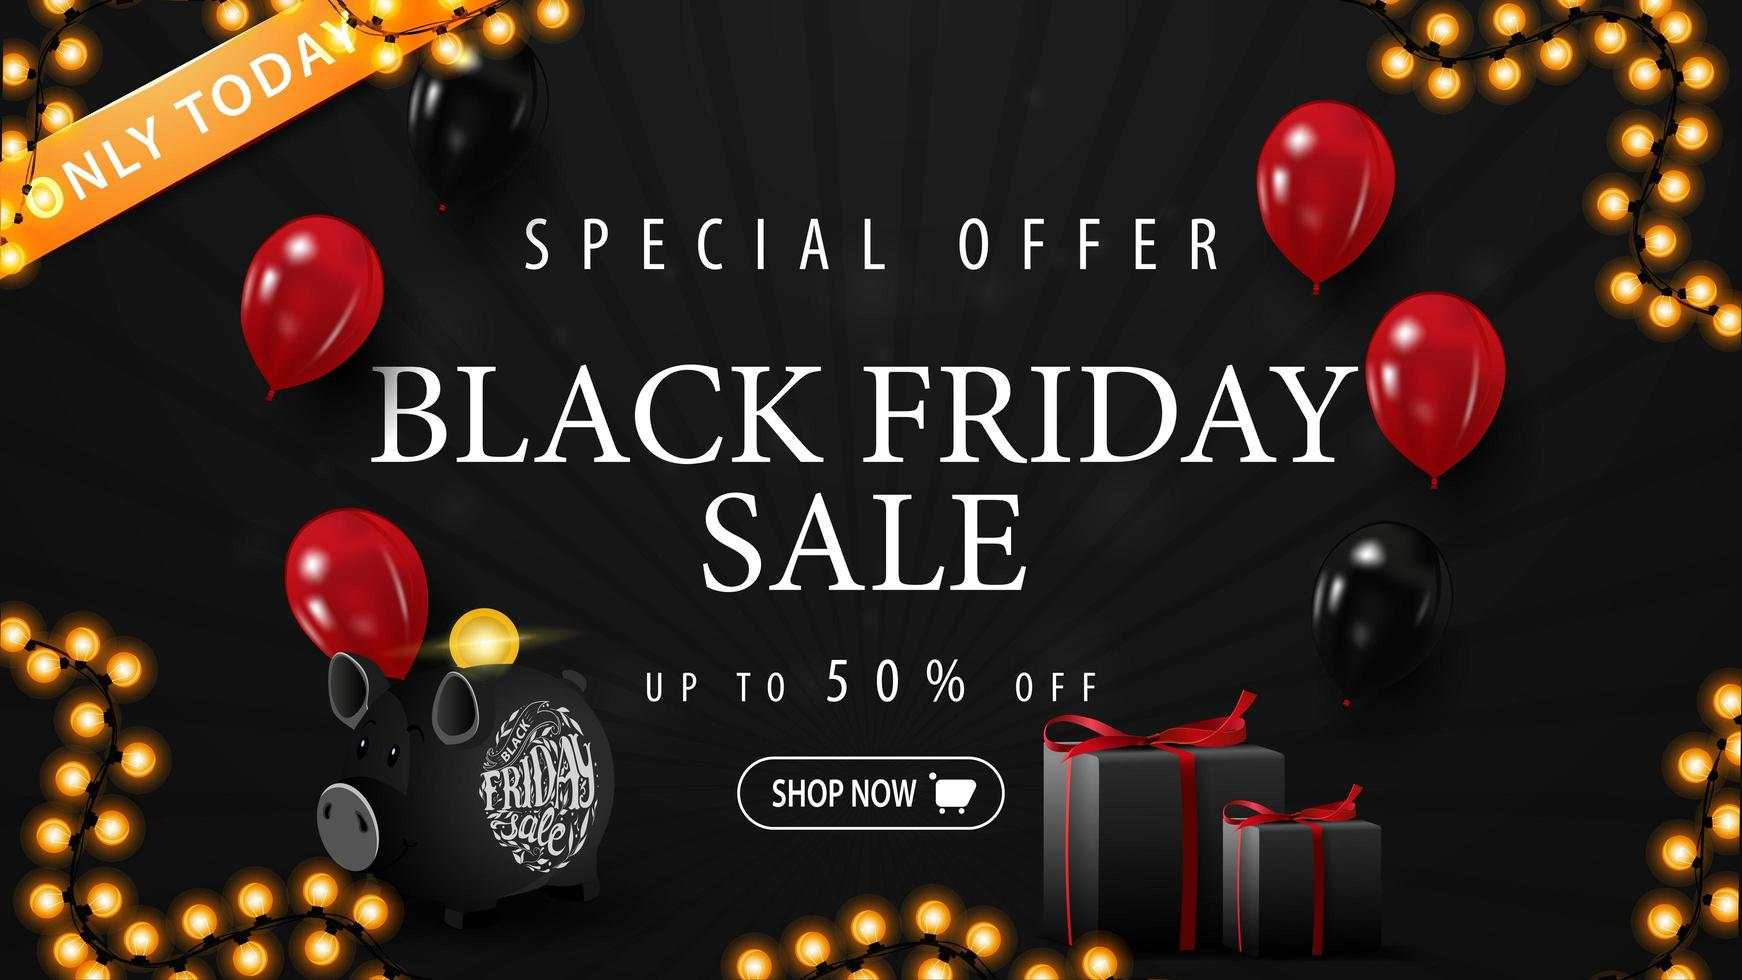 Special offer, Black Friday sale, up to 50 off. Black discount banner with balloons, gifts, piggy Bank and garland vector